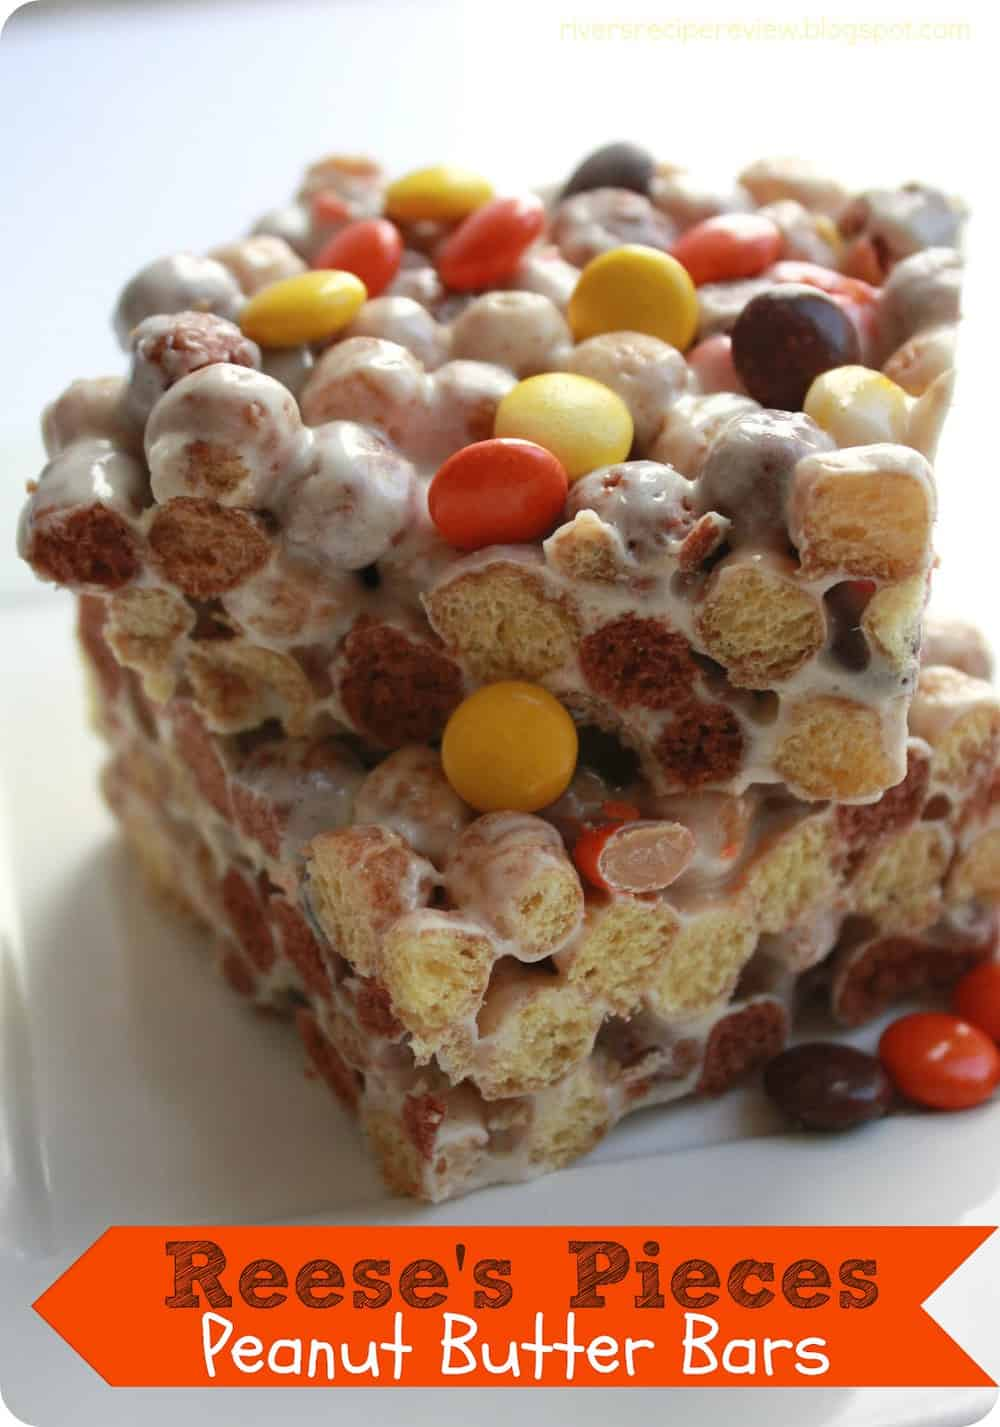 Reese's Pieces Peanut Butter Bars   The Recipe Critic